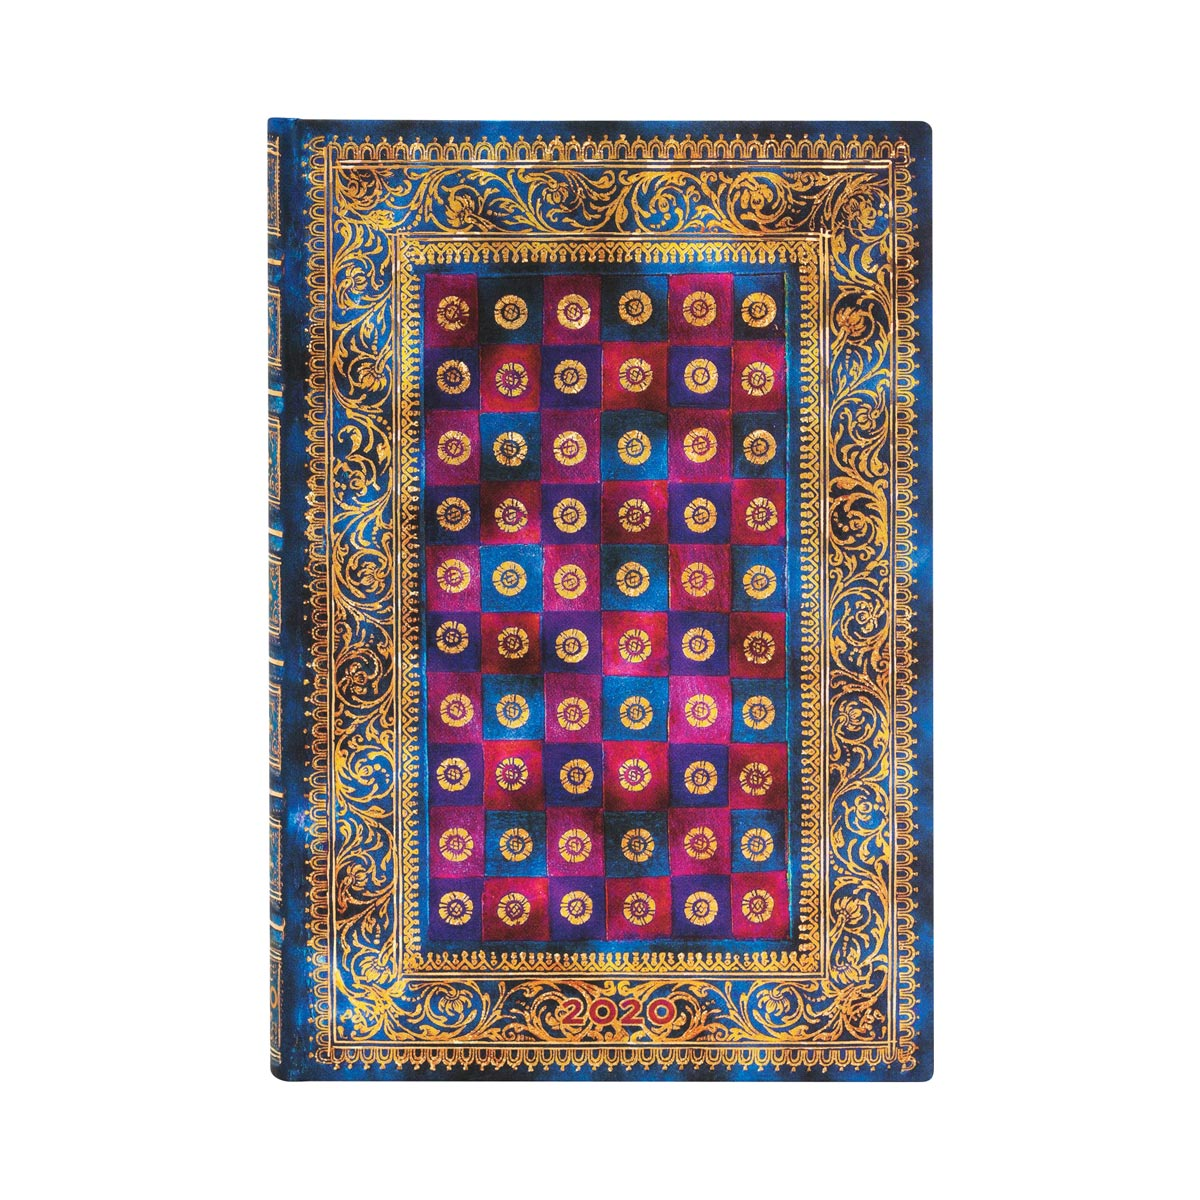 Paperblanks Mini Celeste 2020 Week-At-A-Time Planner